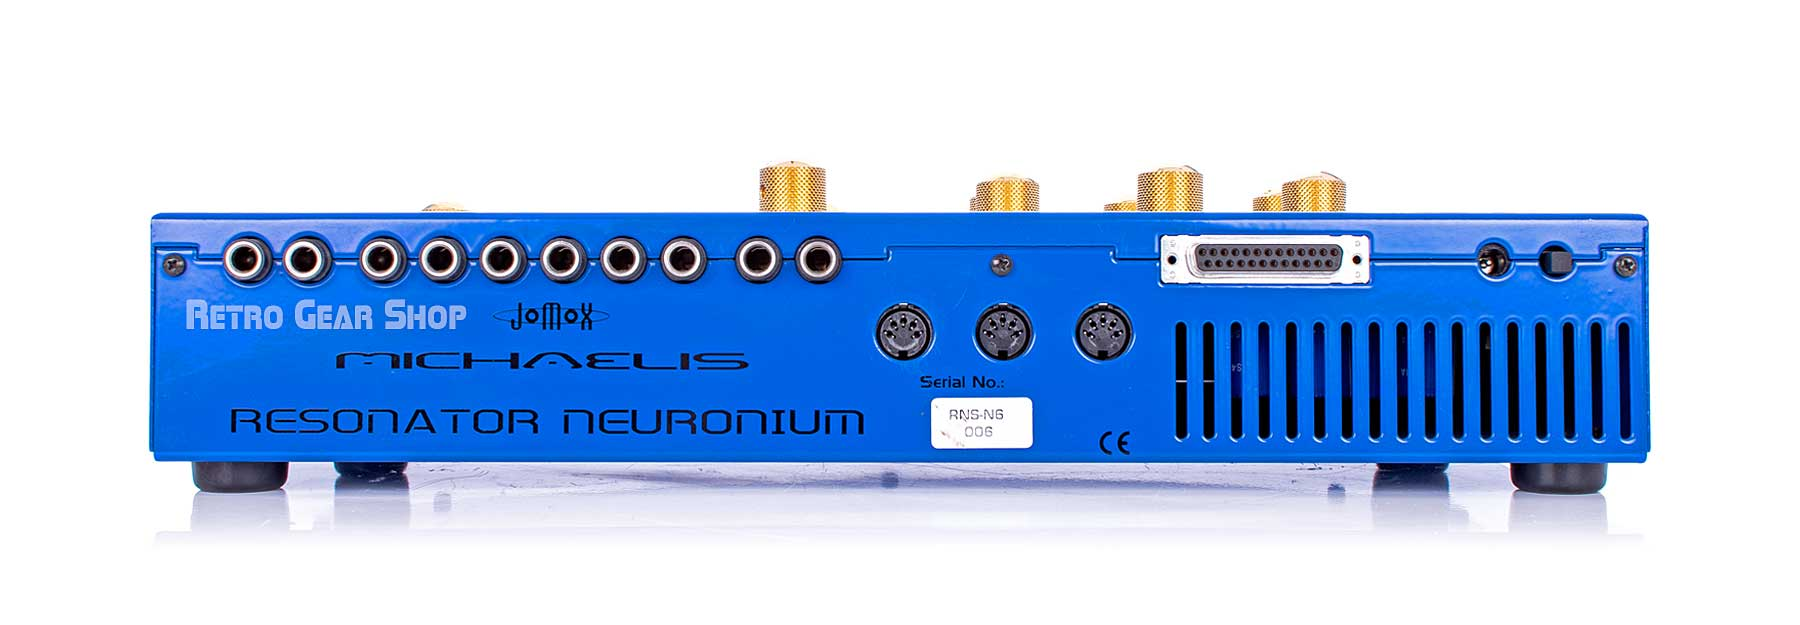 JoMox Resonator Neuronium Rear